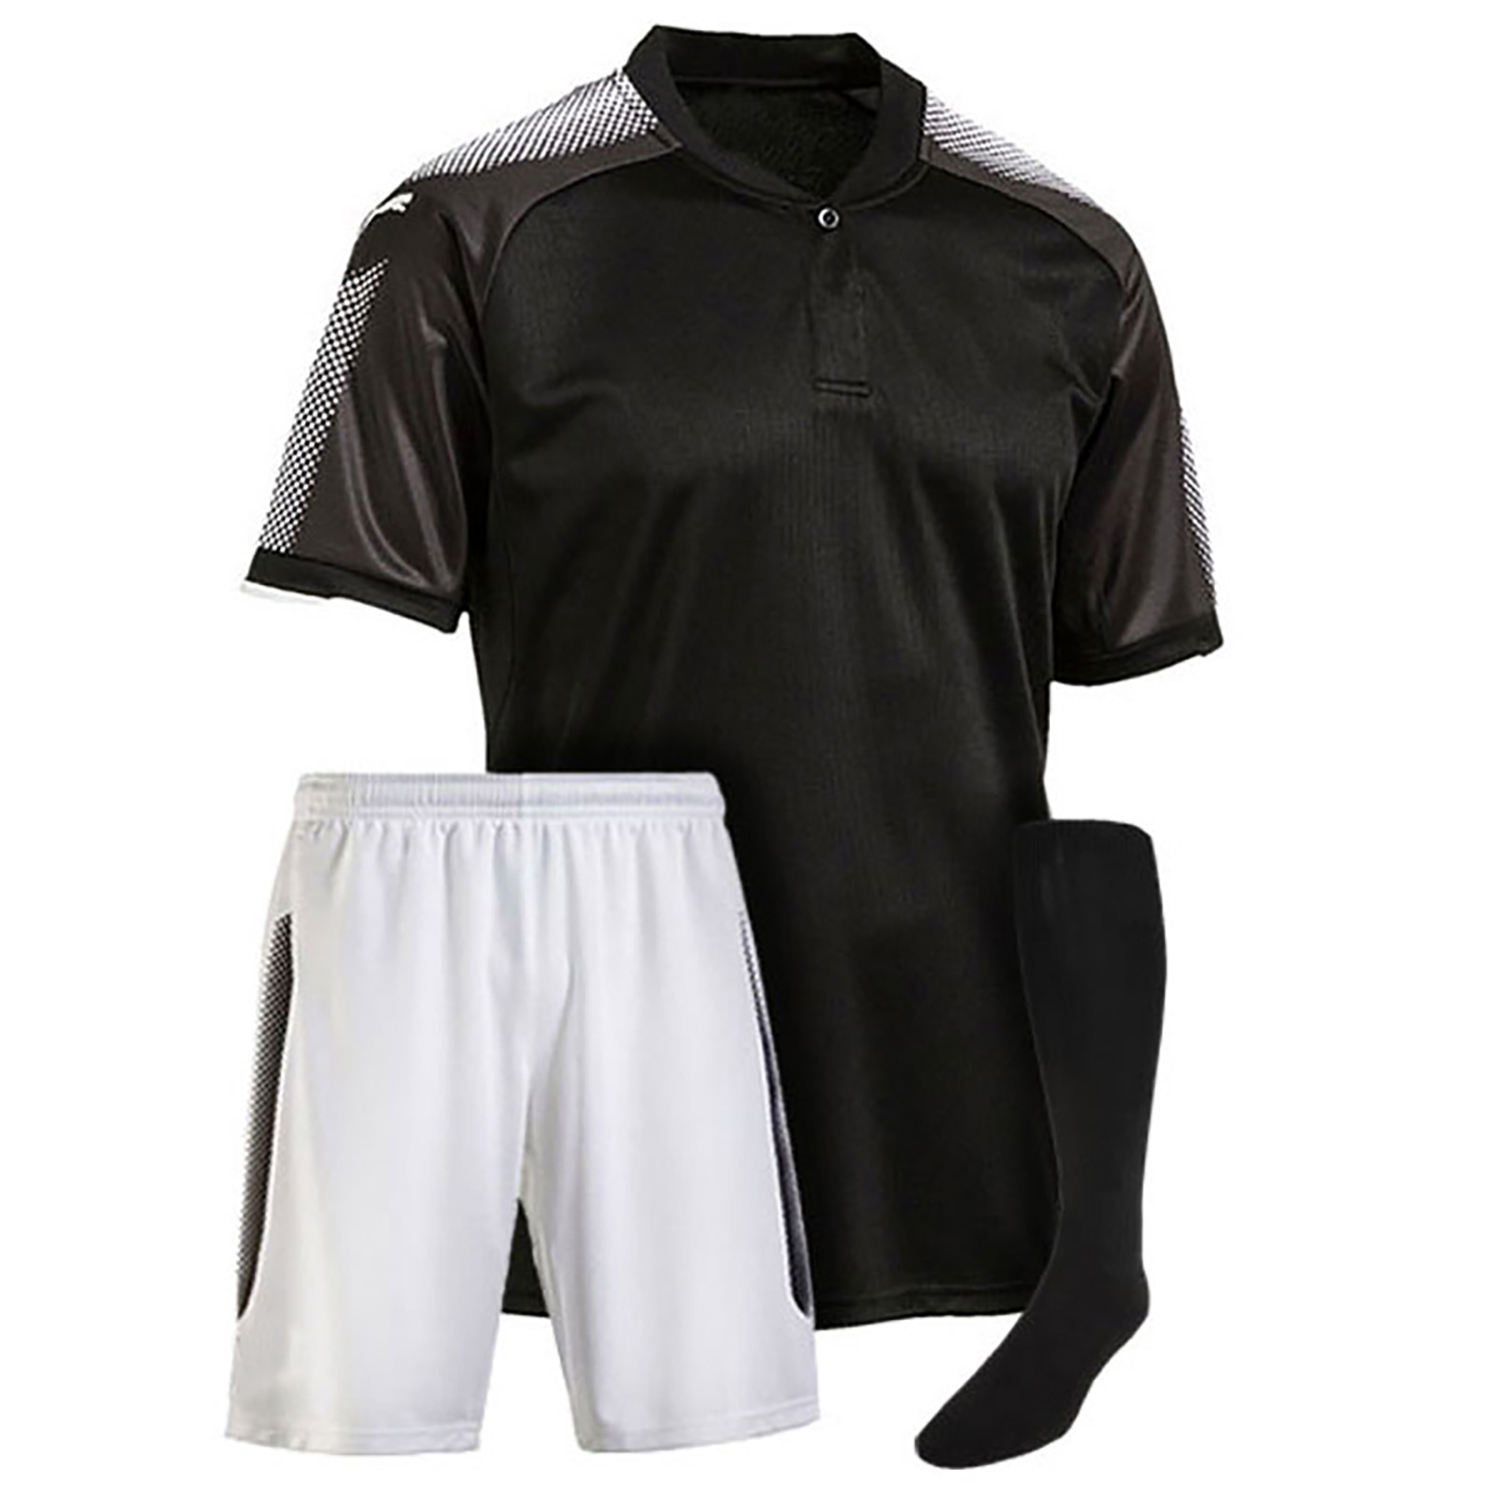 Custom Soccer Jerseys Soccer Uniforms Competition Training Suits Soccer Sets.